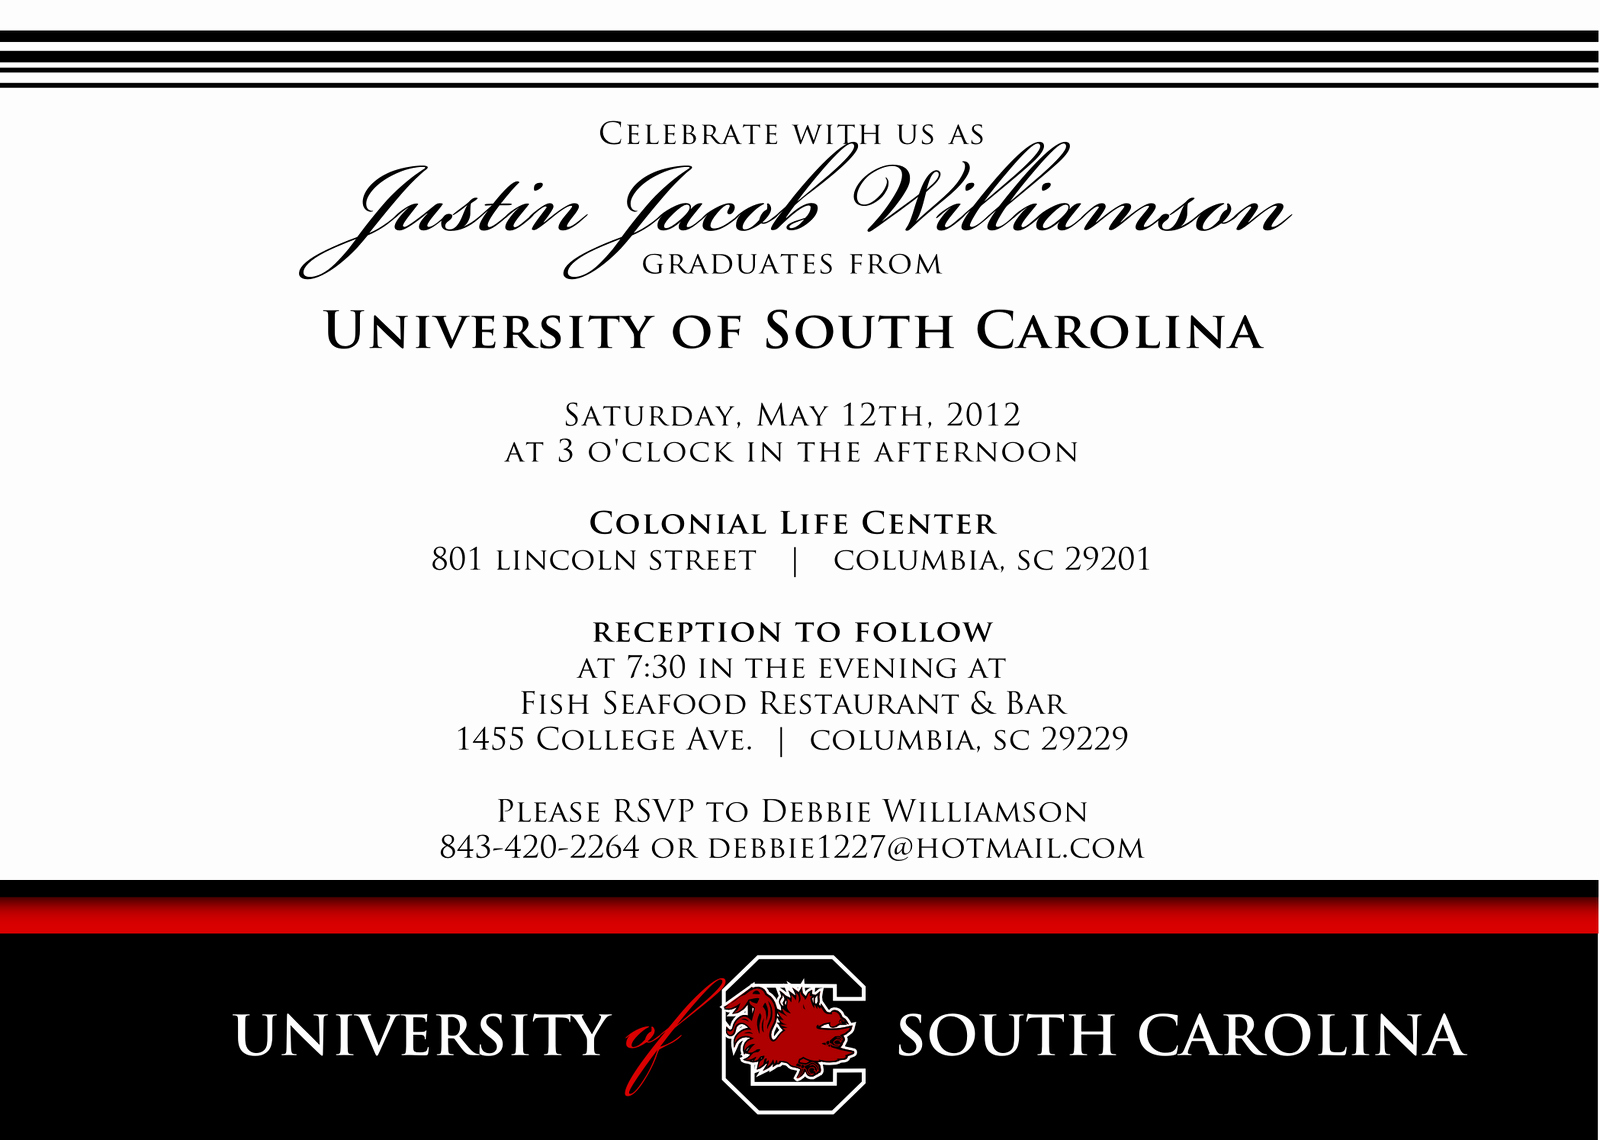 Graduation Commencement Invitation Wording Awesome Graduation Dinner Invitation Wording